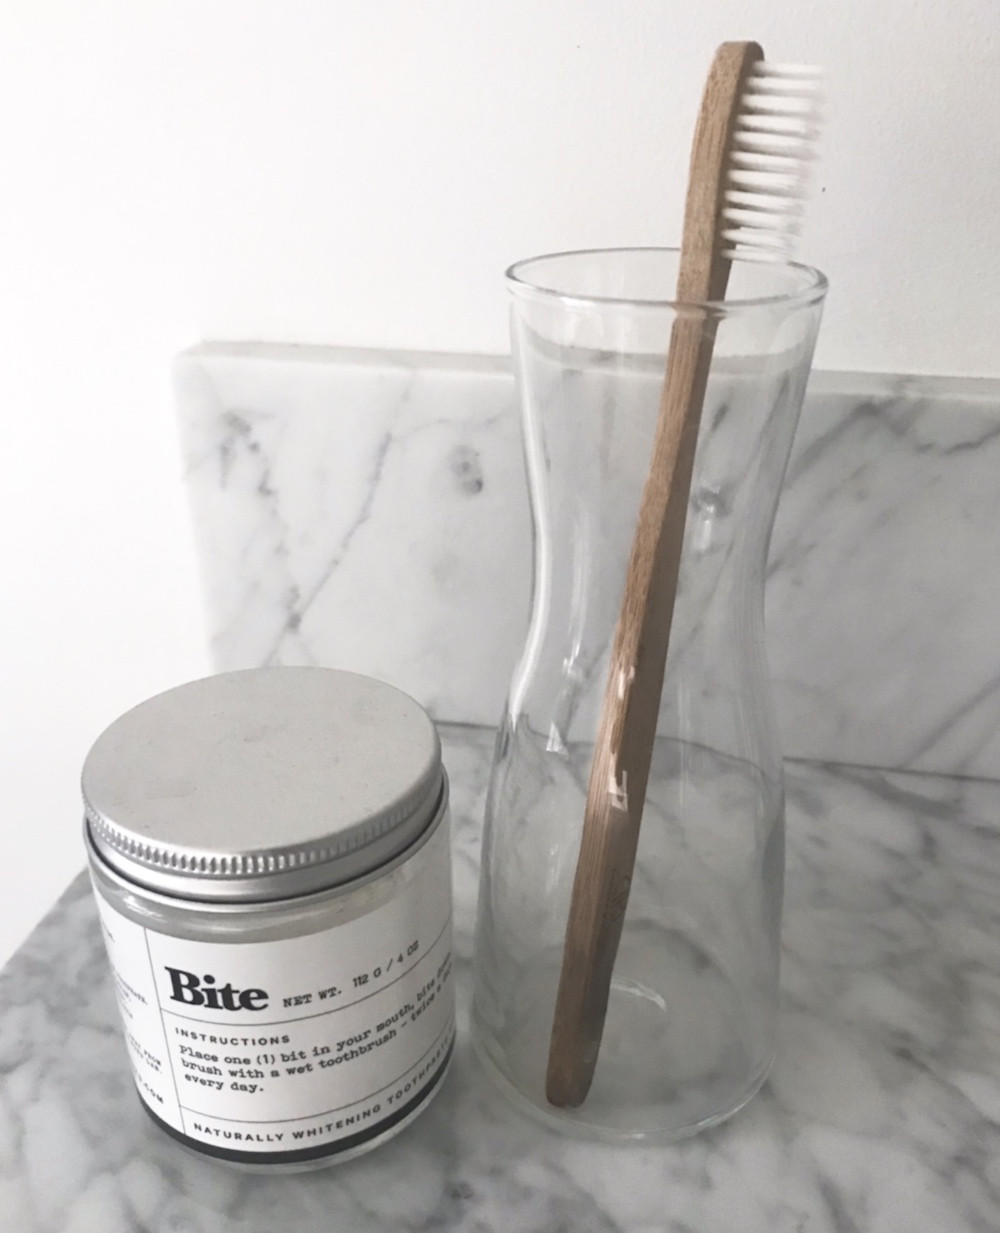 bite toothpaste, bamboo toothbrush, reusable toothpaste container, glass jar, recycle, save the animals